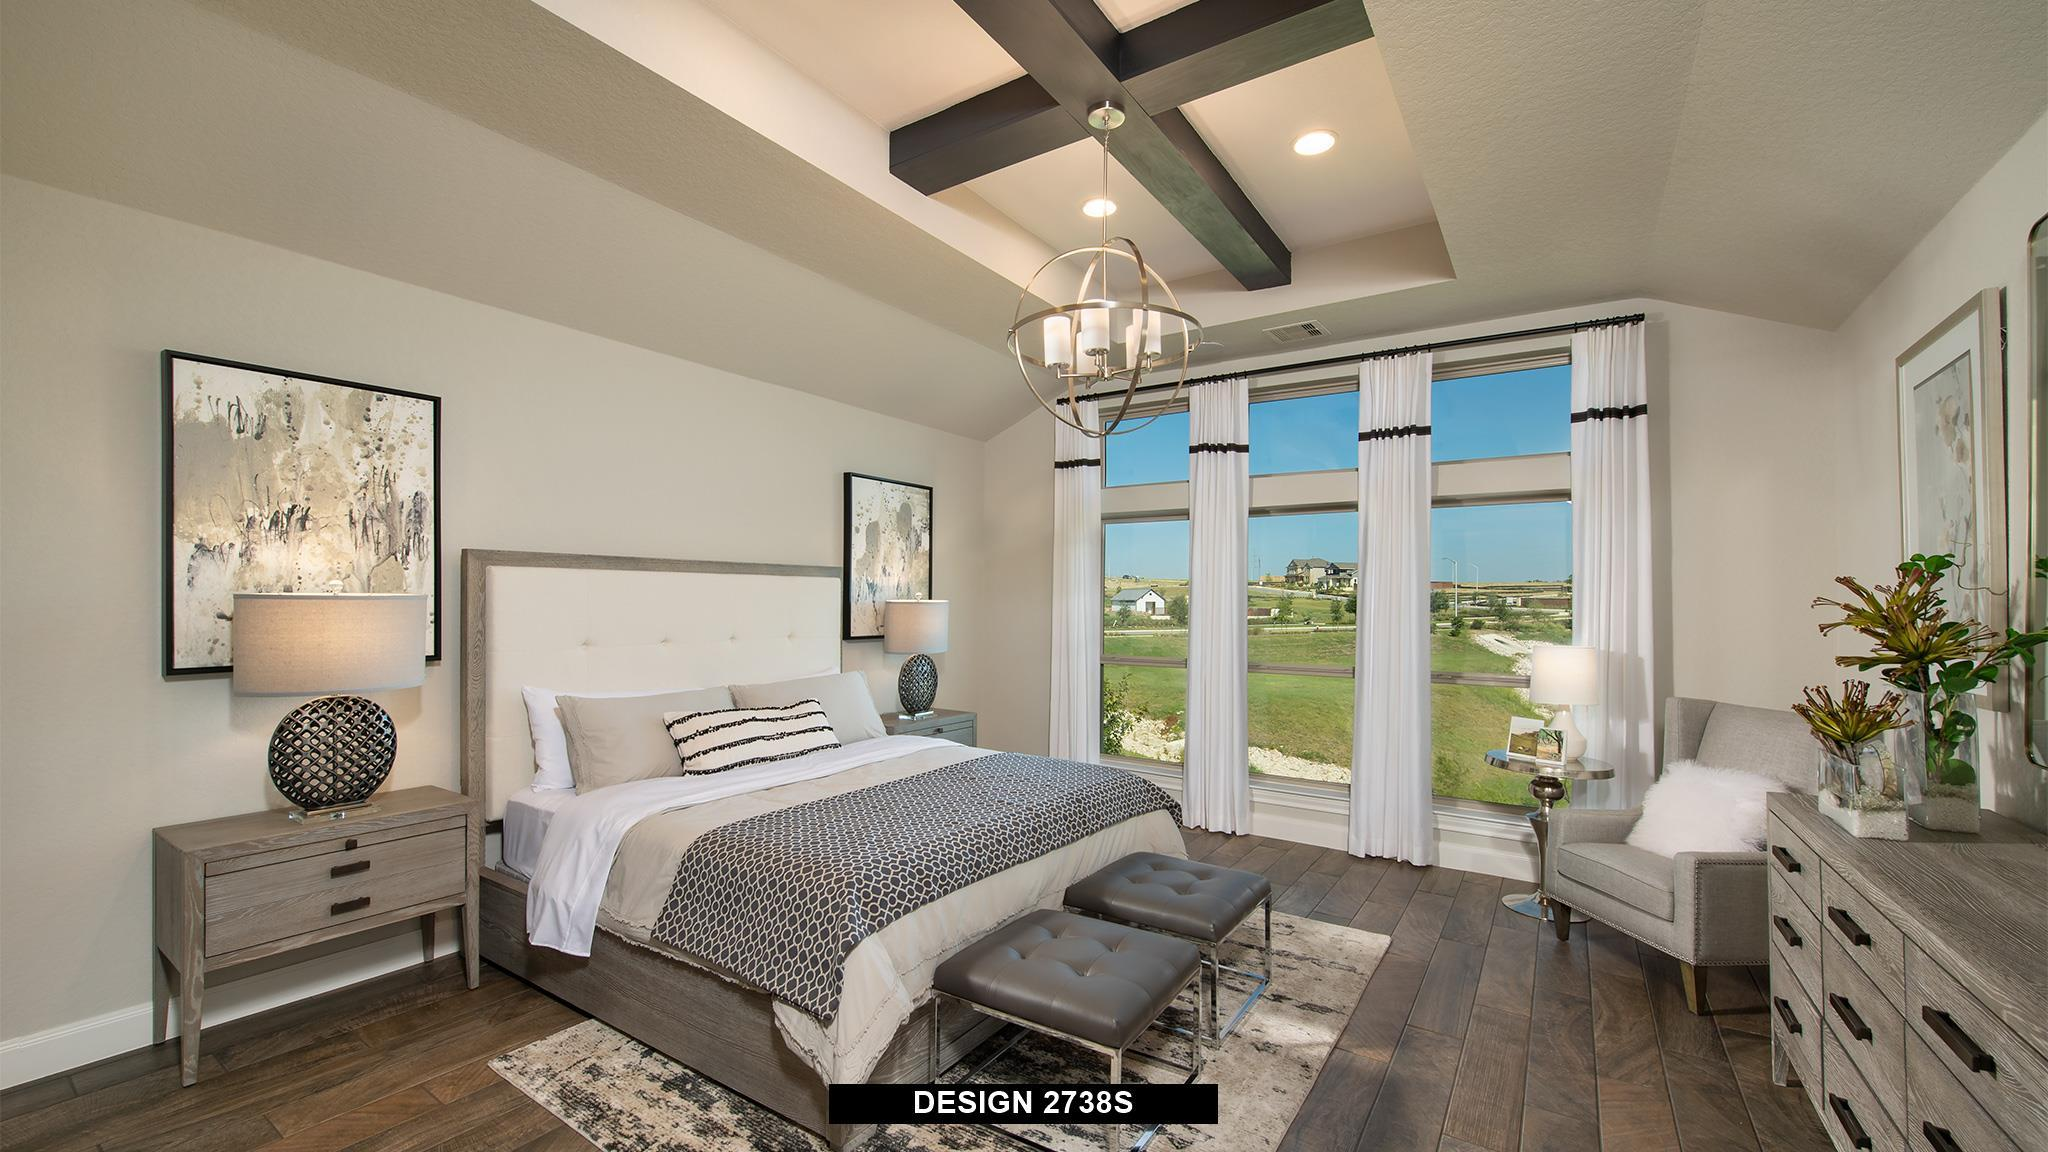 Bedroom featured in the 2738S By Perry Homes in Austin, TX